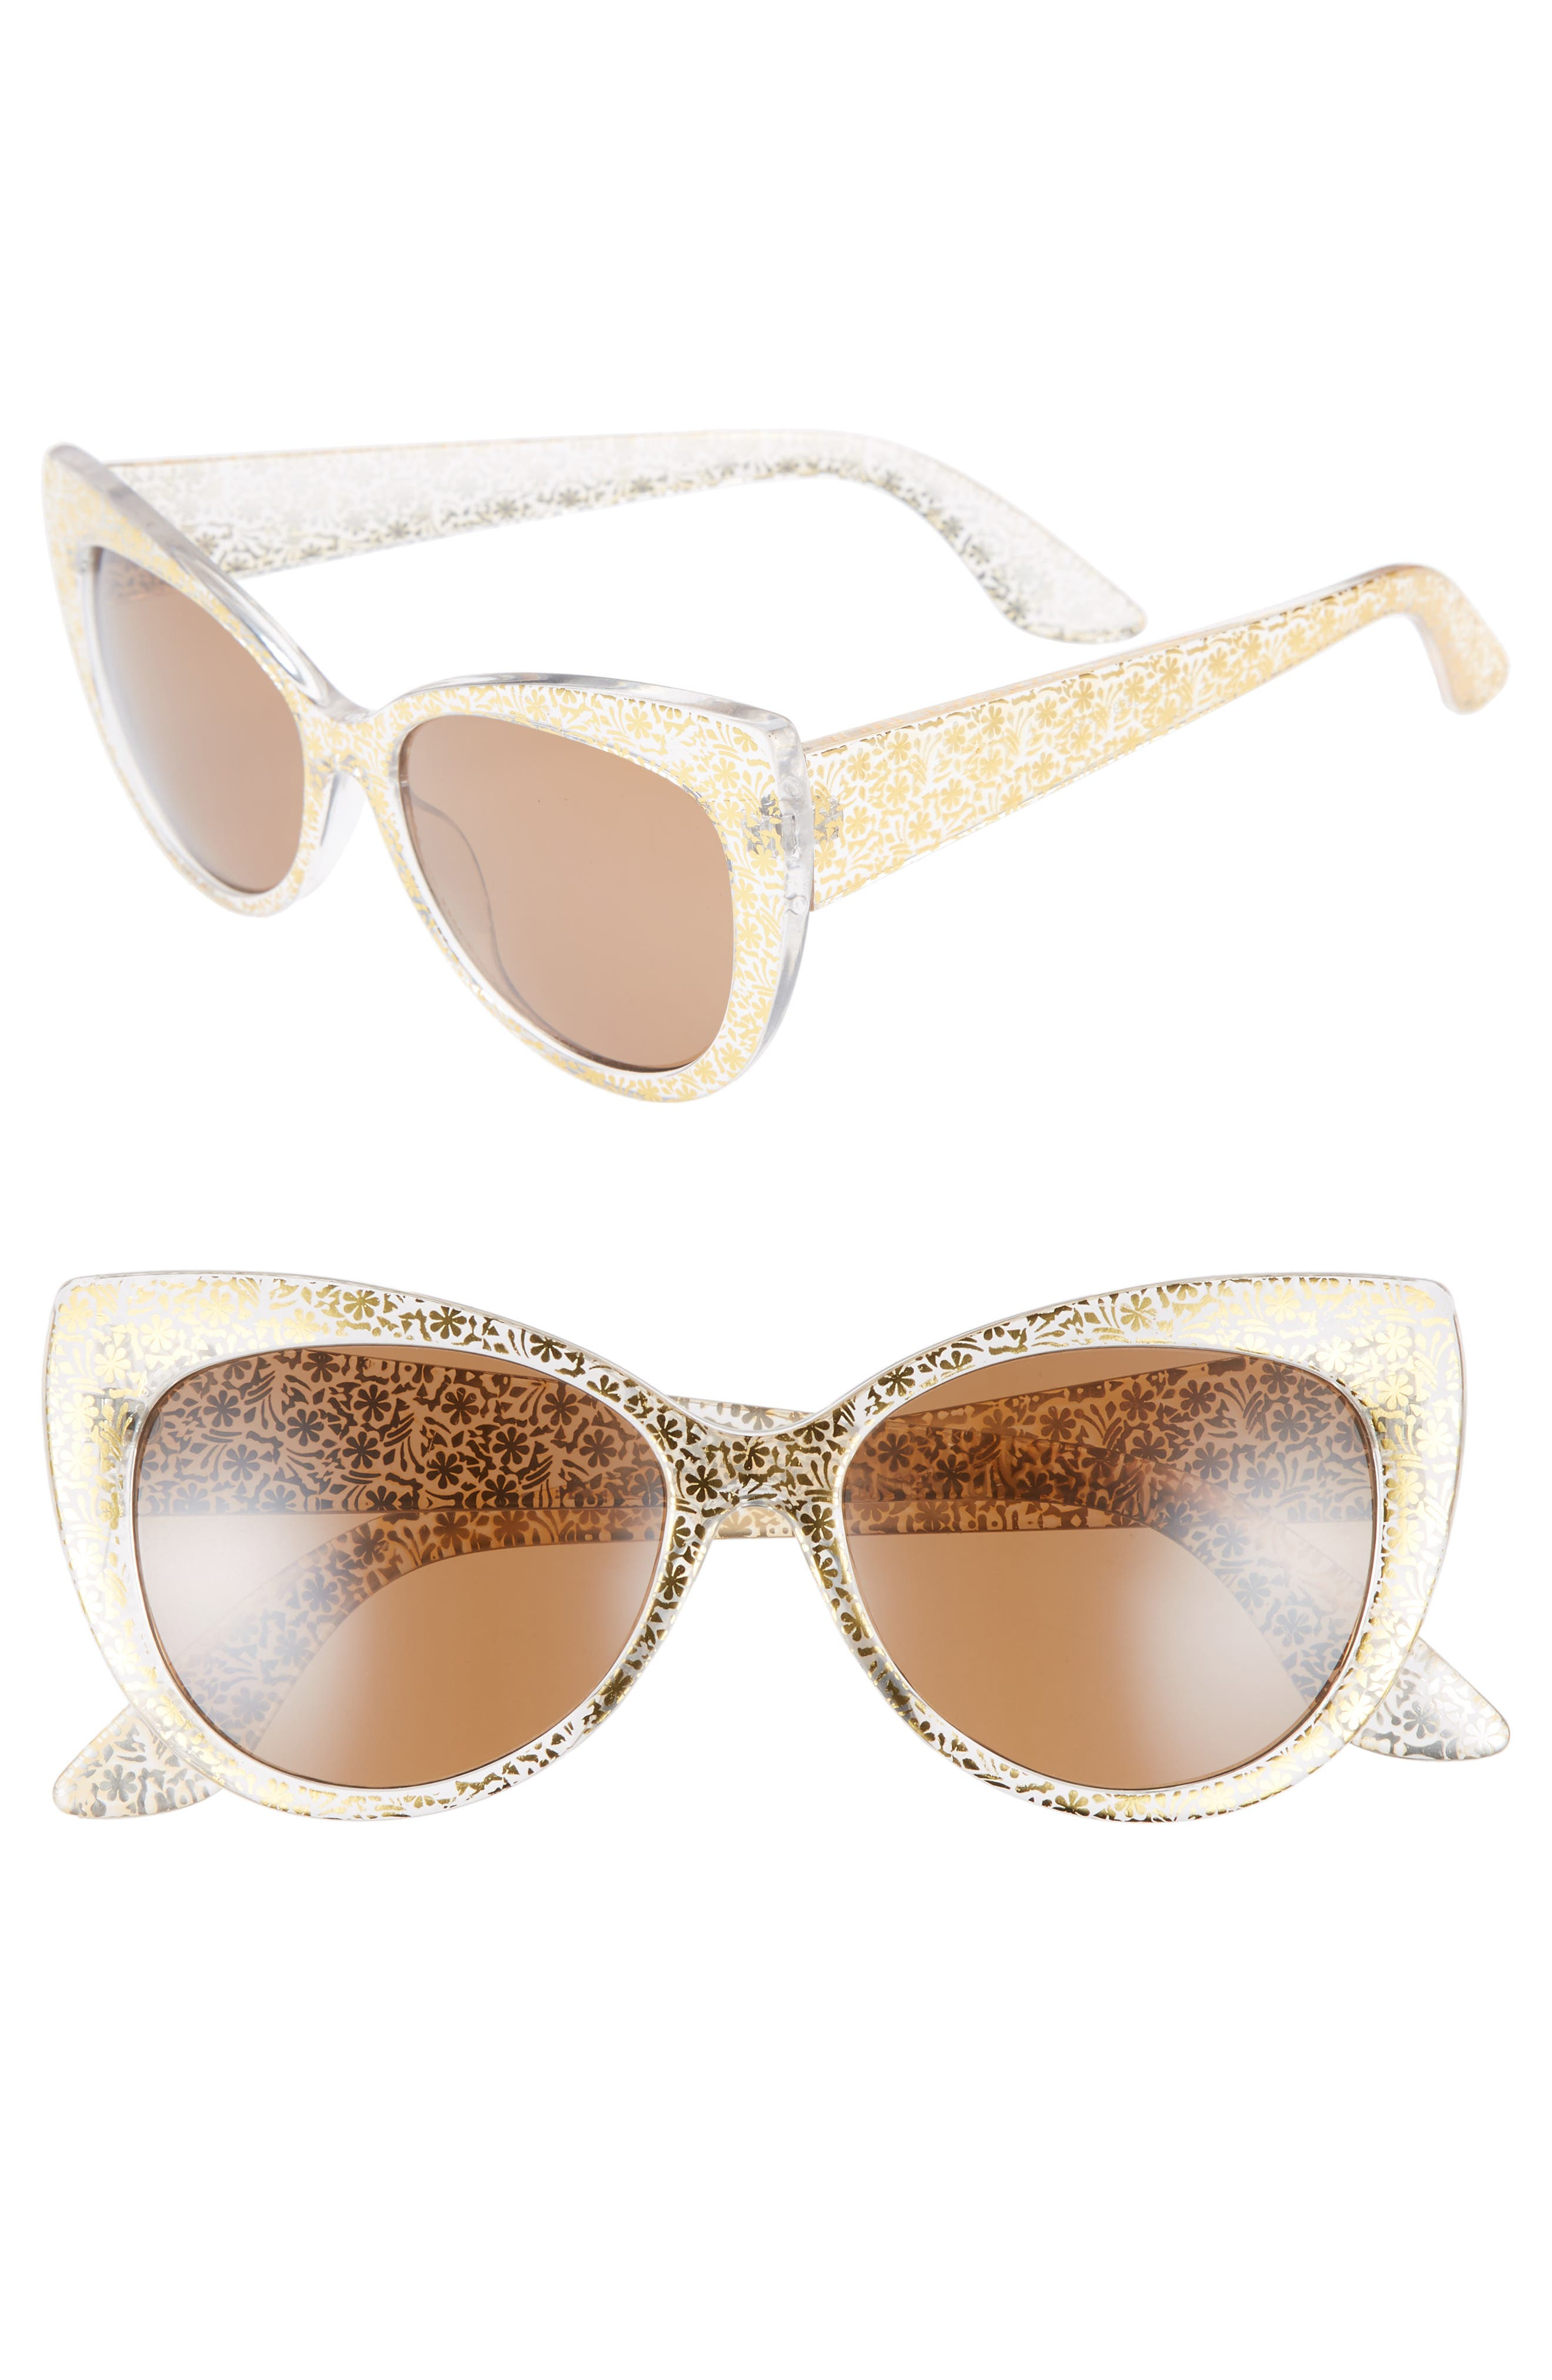 55mm Floral Cat Eye Sunglasses,                             Main thumbnail 1, color,                             Gold/ Gold